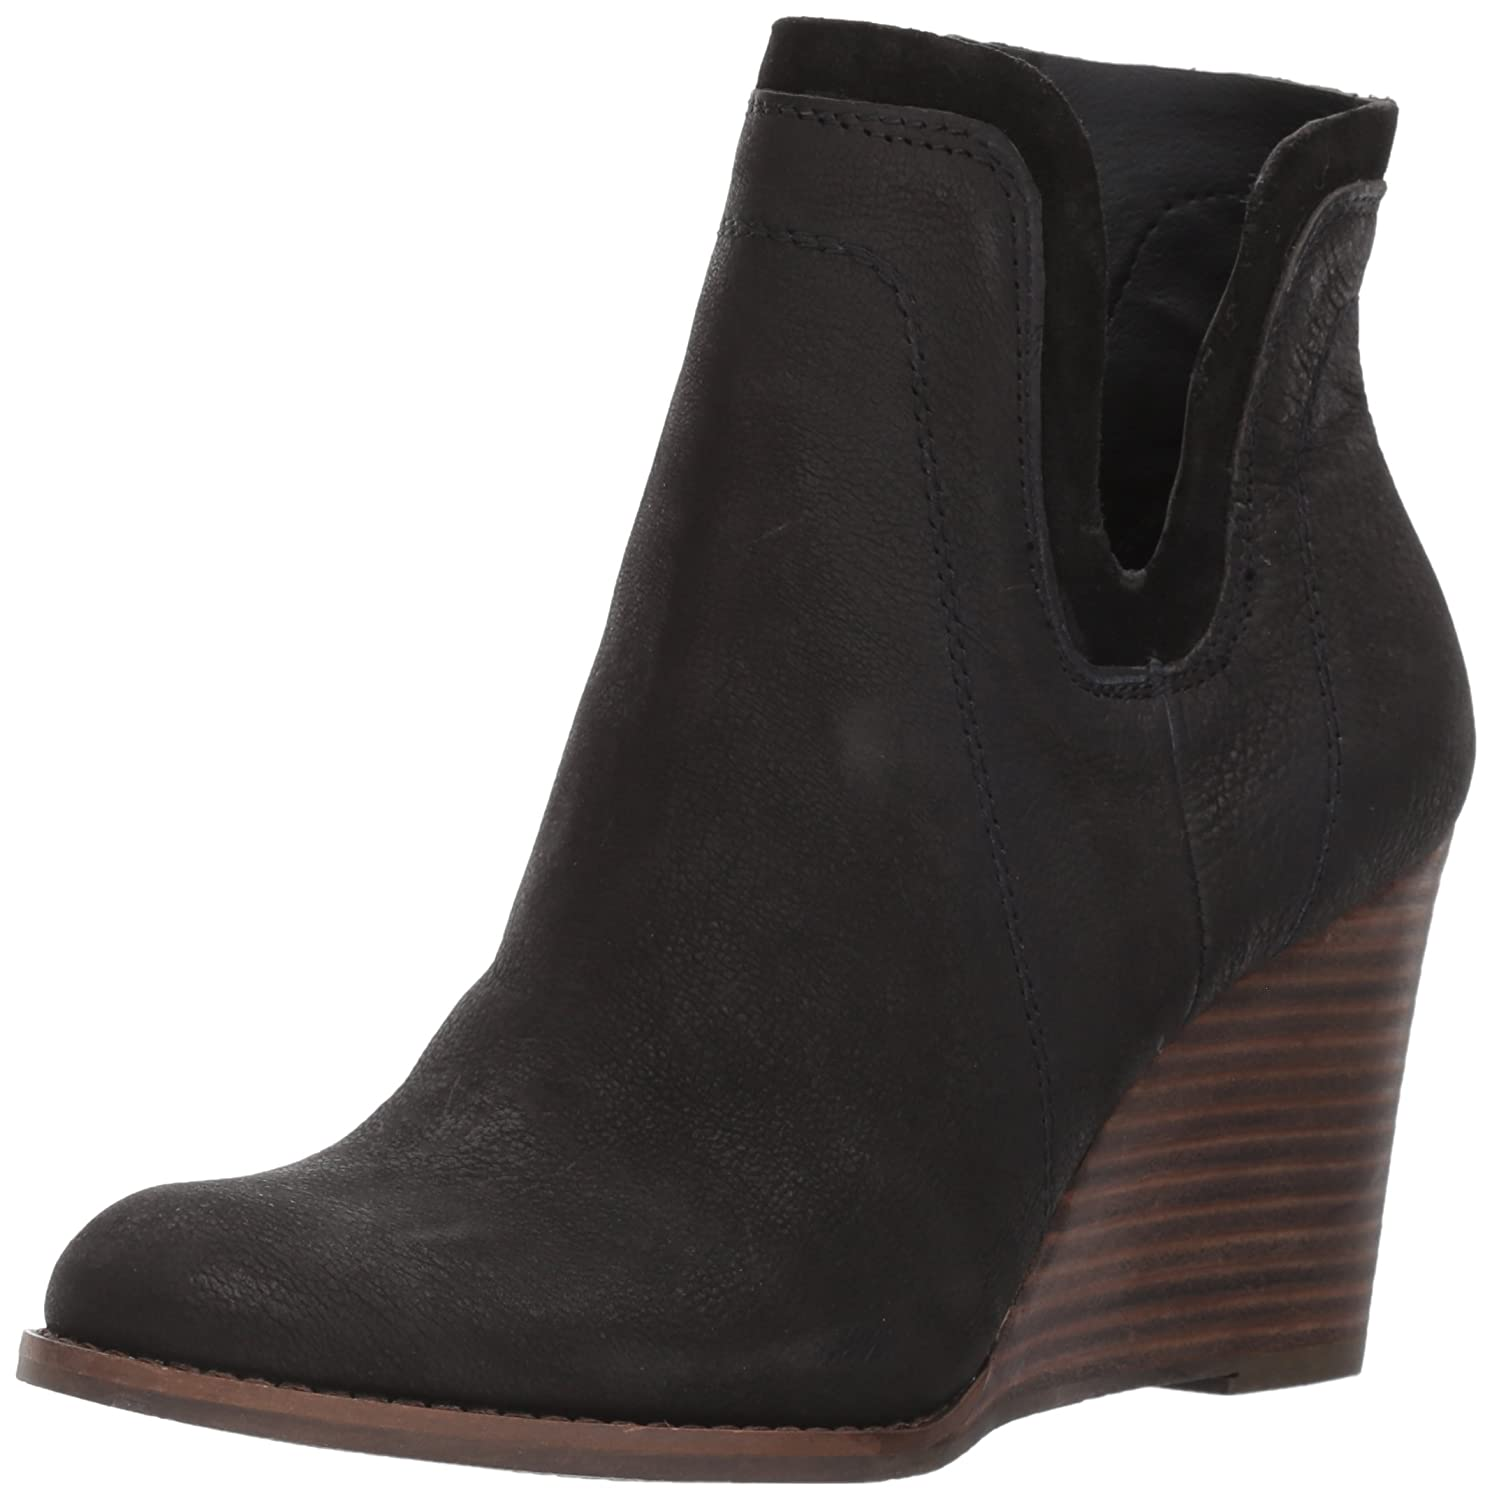 Lucky Brand Women's Yenata Fashion Boot B06XCLG1J9 9.5 B(M) US|Black